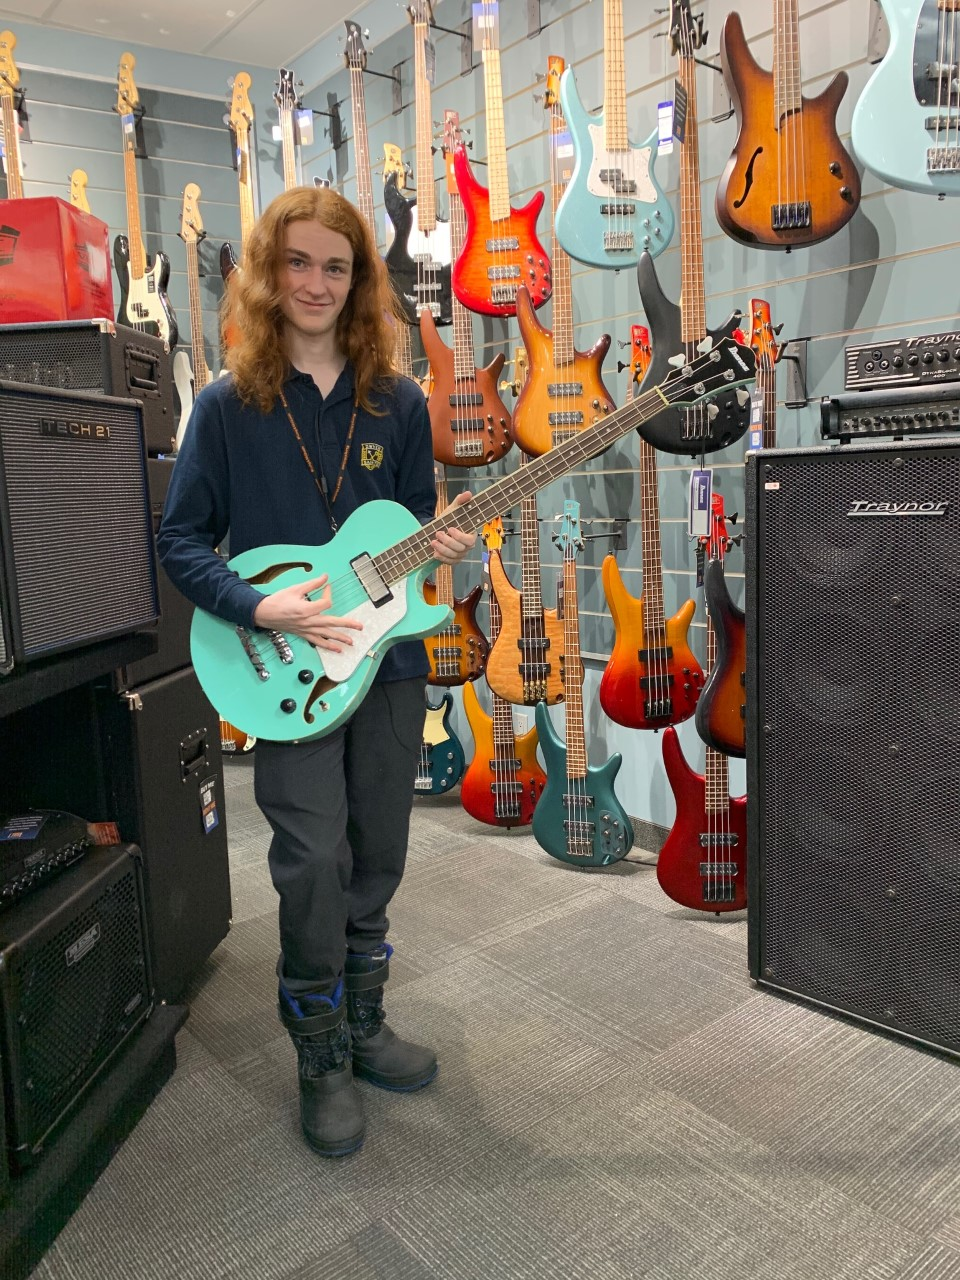 Male student holding a guitar in a music store